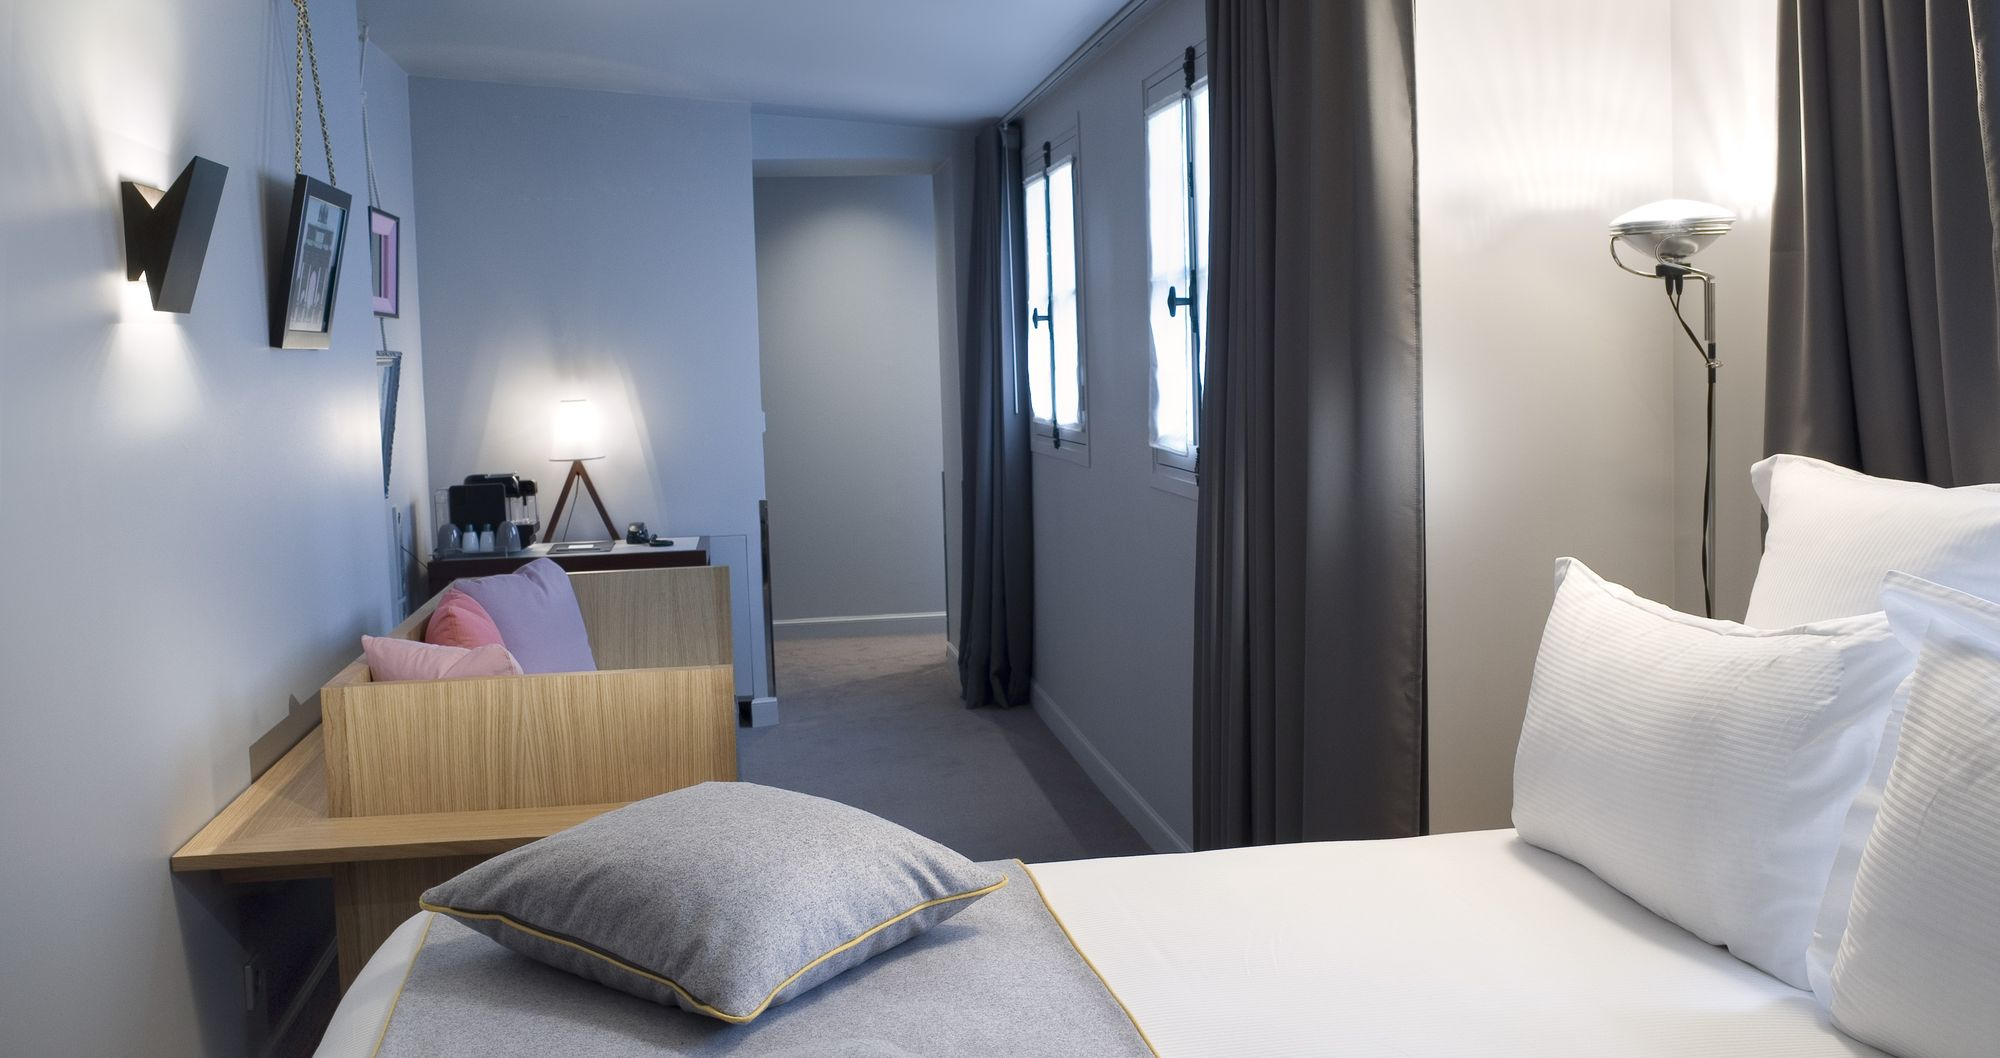 6/Chambres/New Photos Chambre/Deluxeresize.jpg